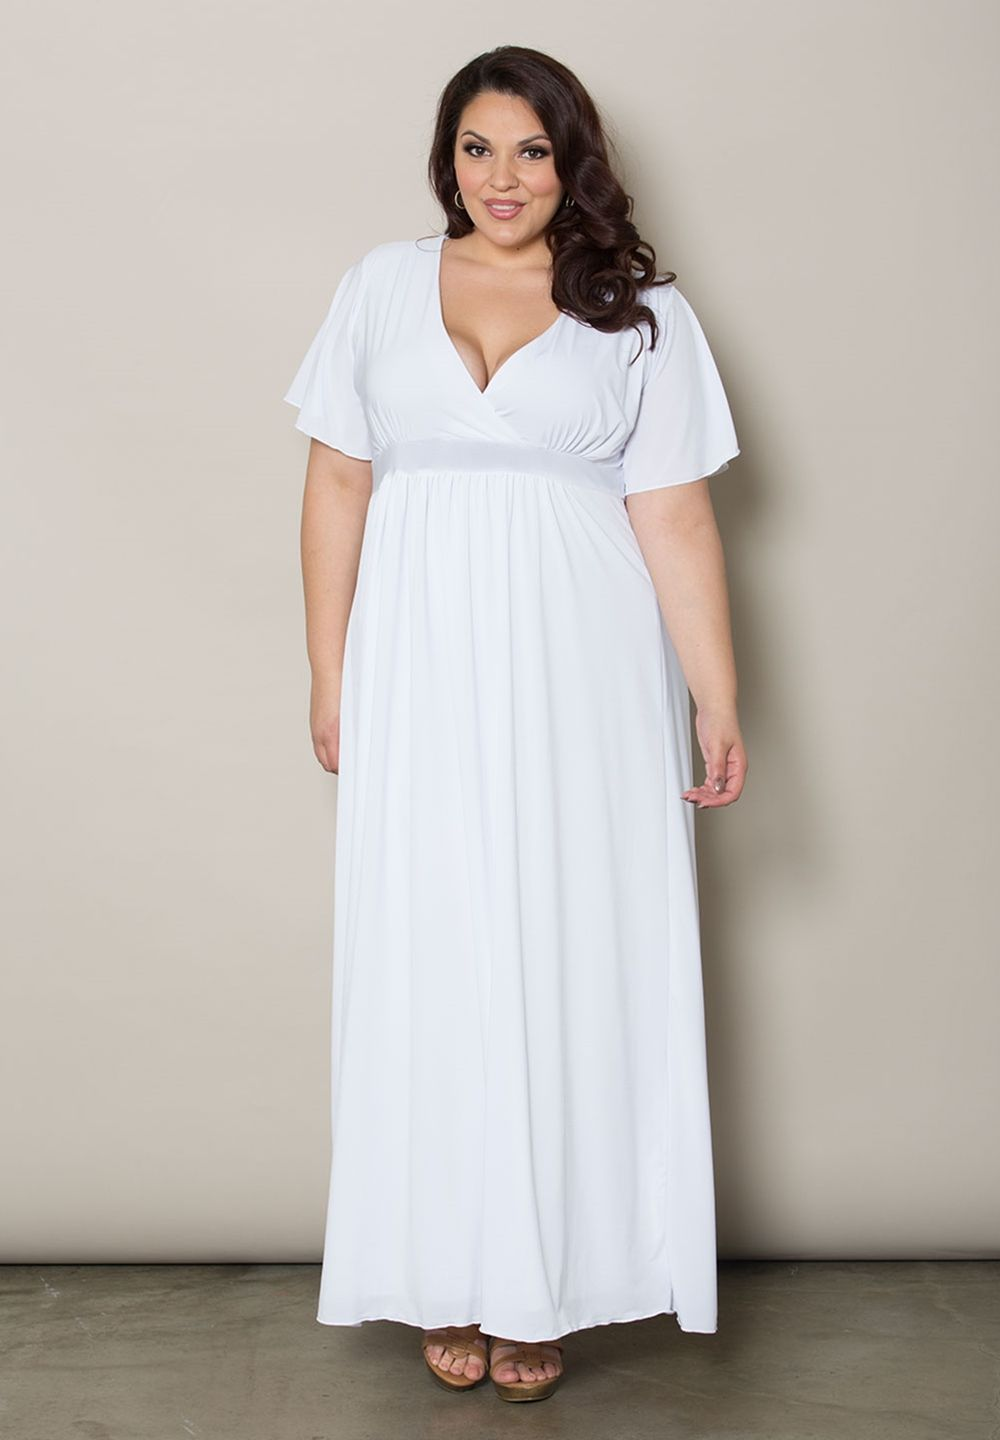 Classic Maxi Dress Maxi Dresses Casual Wedding And Blue Maxi